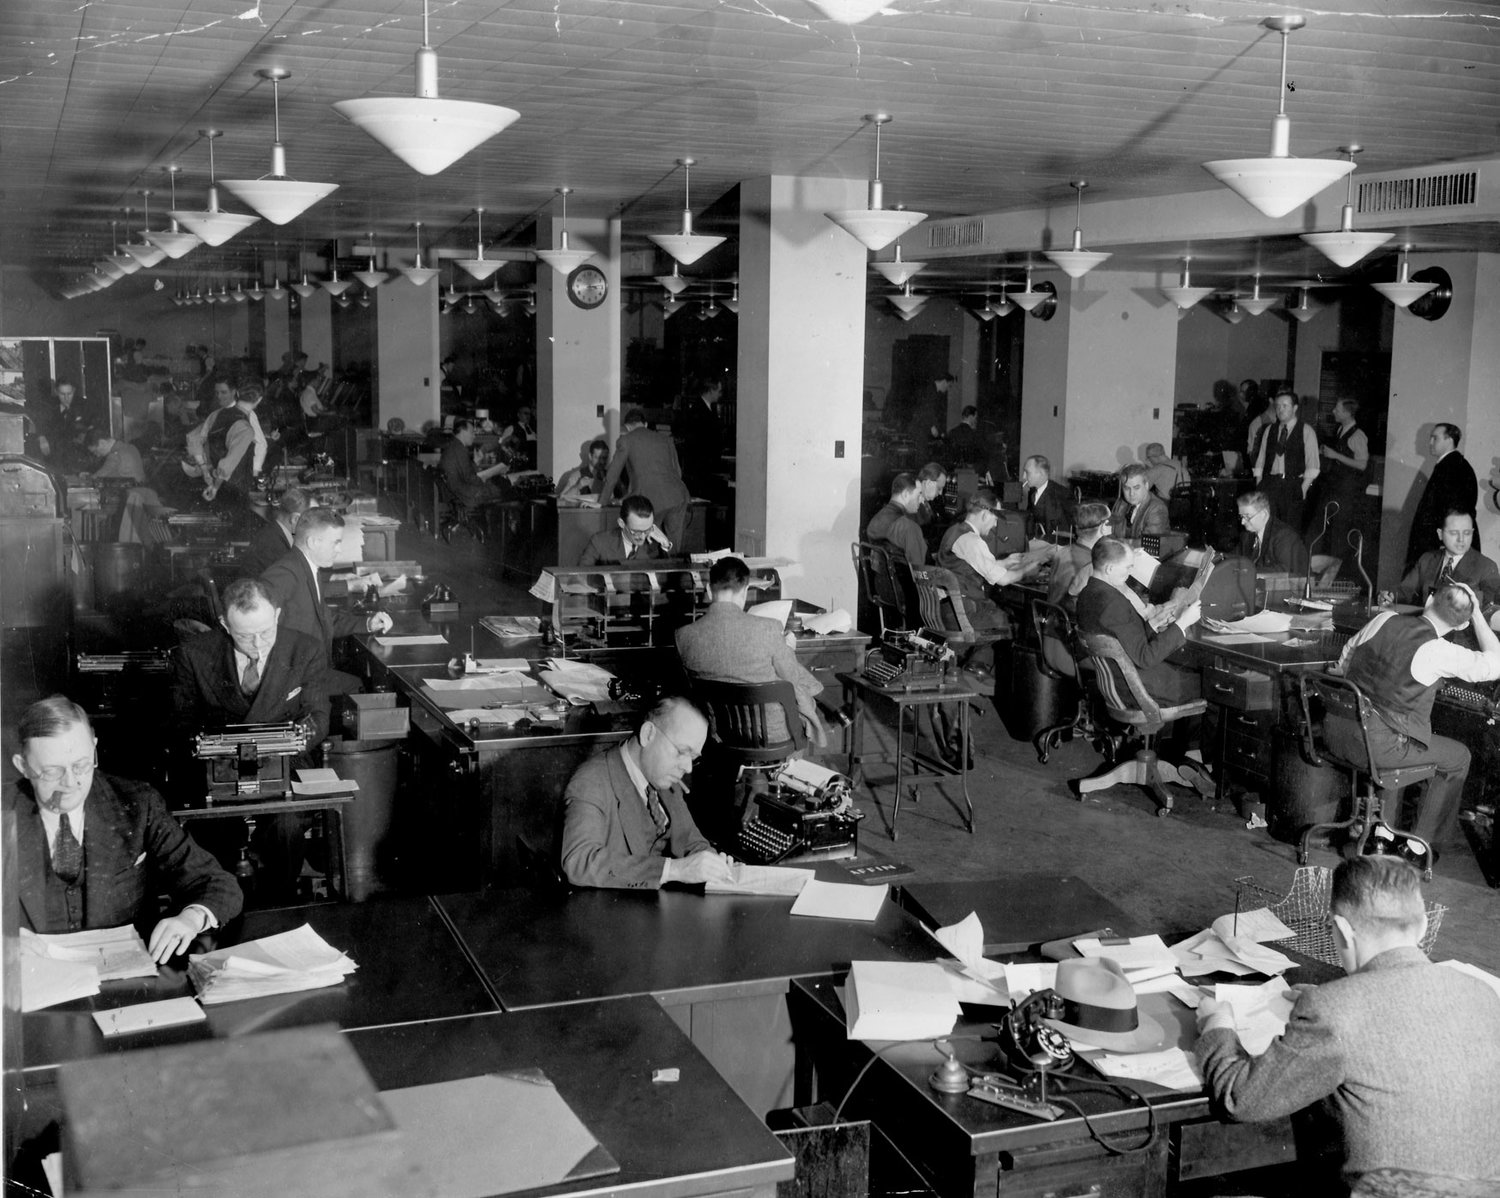 80th anniversary of AP's move to Rockefeller Center